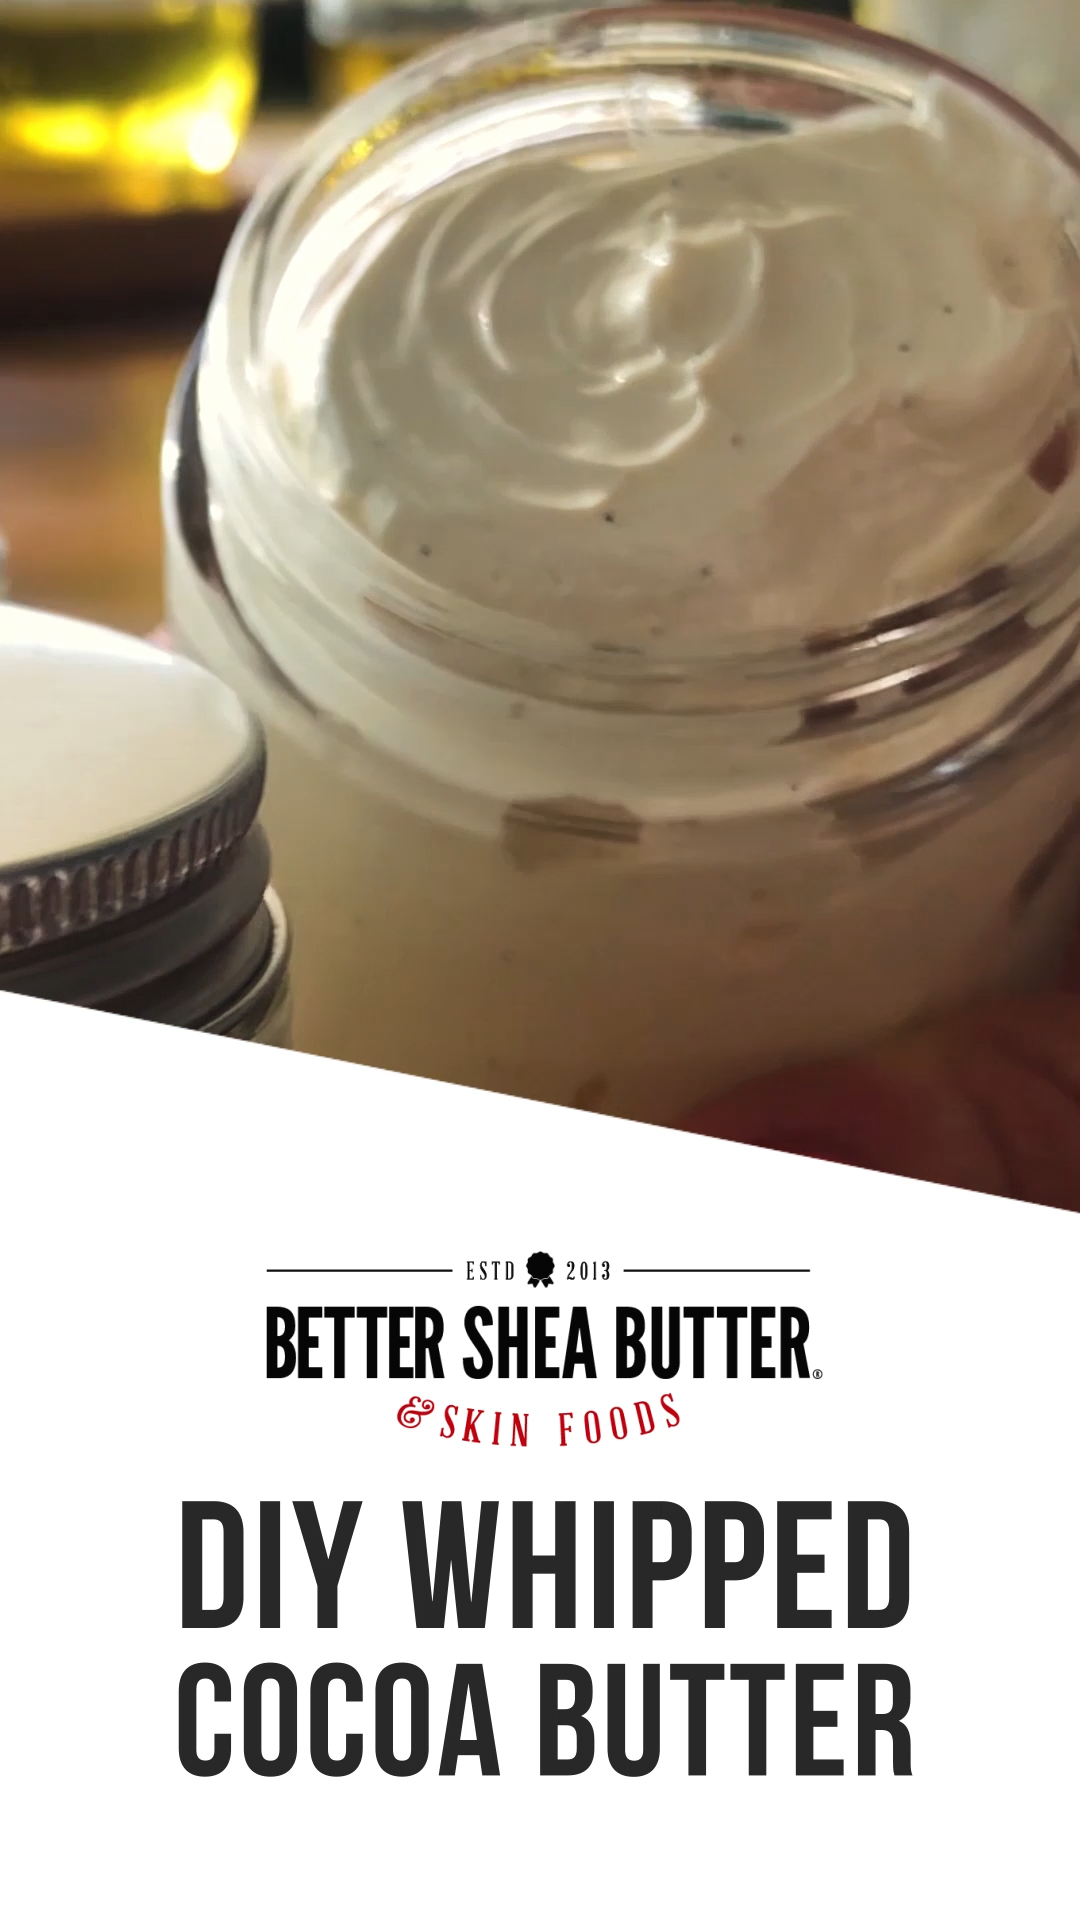 Whipped Cocoa Body Butter Complete Kit + Tutorial!